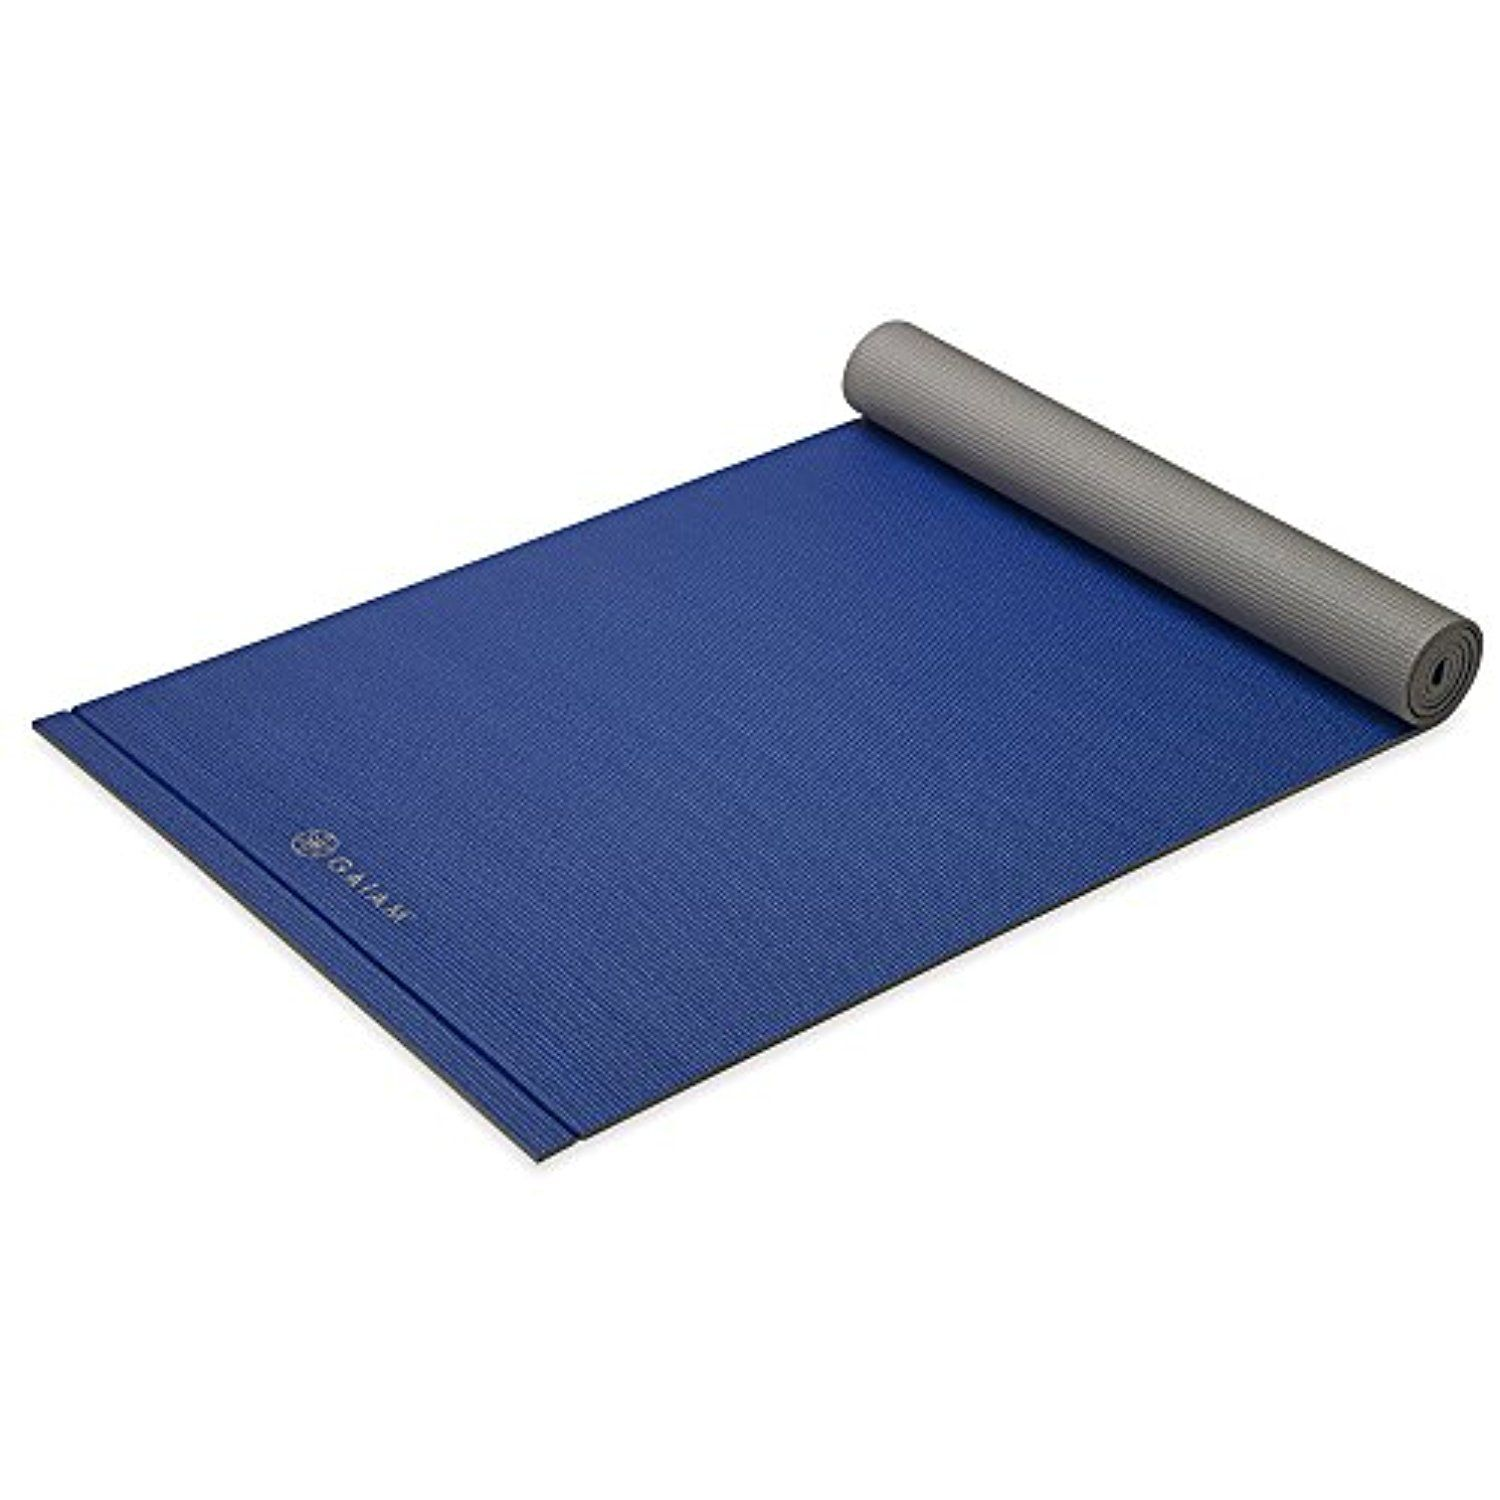 Gaiam Easy Roll Premium Yoga Mats Click Image To Review More Details This Is An Affiliate Link Yoga Outdoor Blanket Easy Rolls Gaiam